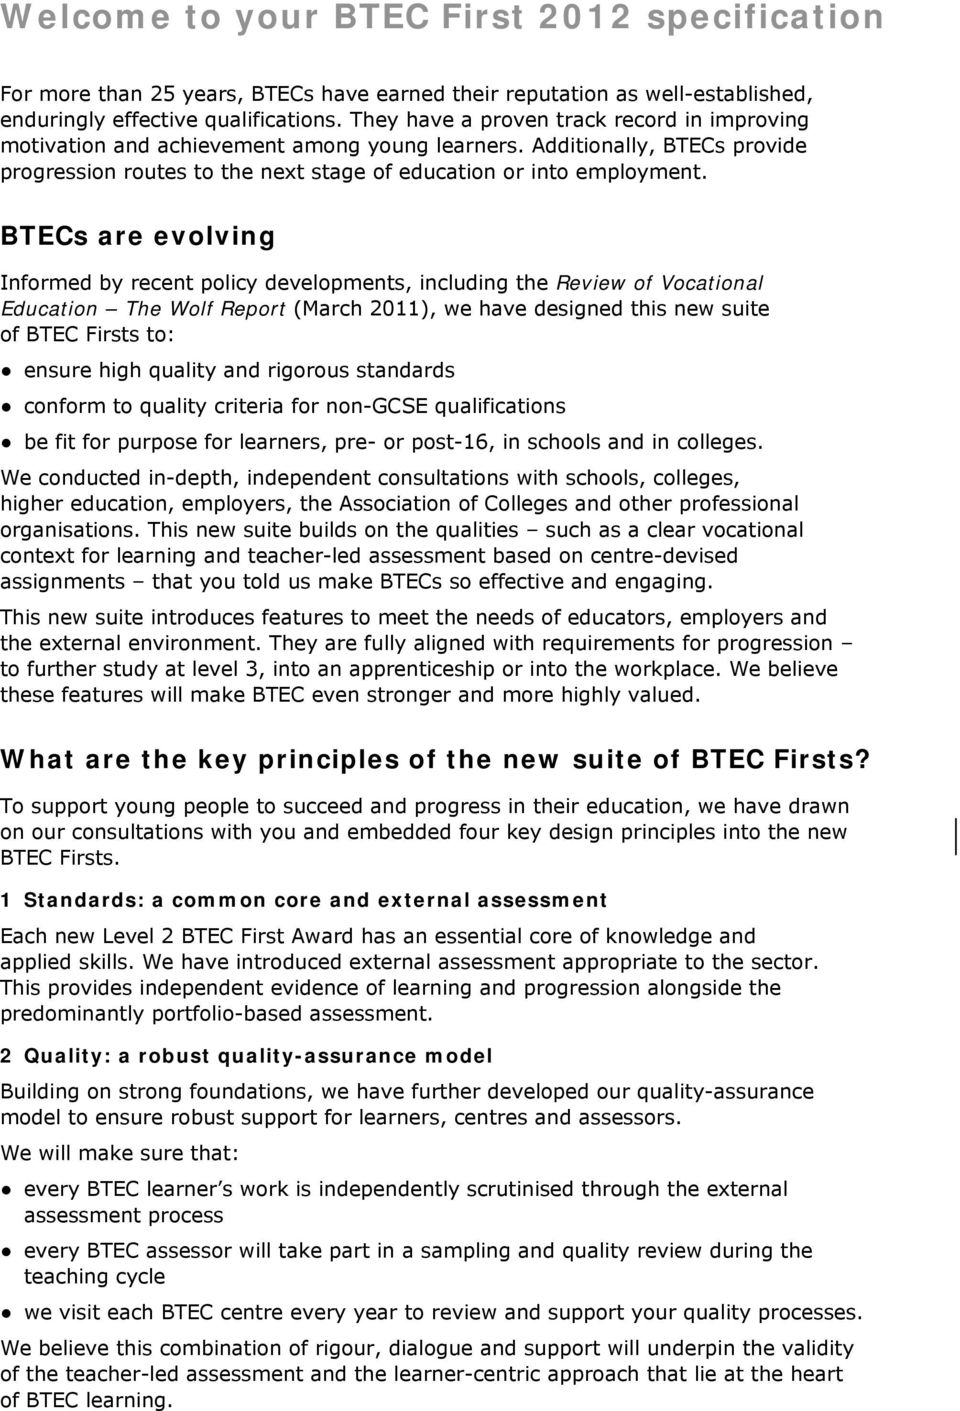 BTECs are evolving Informed by recent policy developments, including the Review of Vocational Education The Wolf Report (March 2011), we have designed this new suite of BTEC Firsts to: ensure high